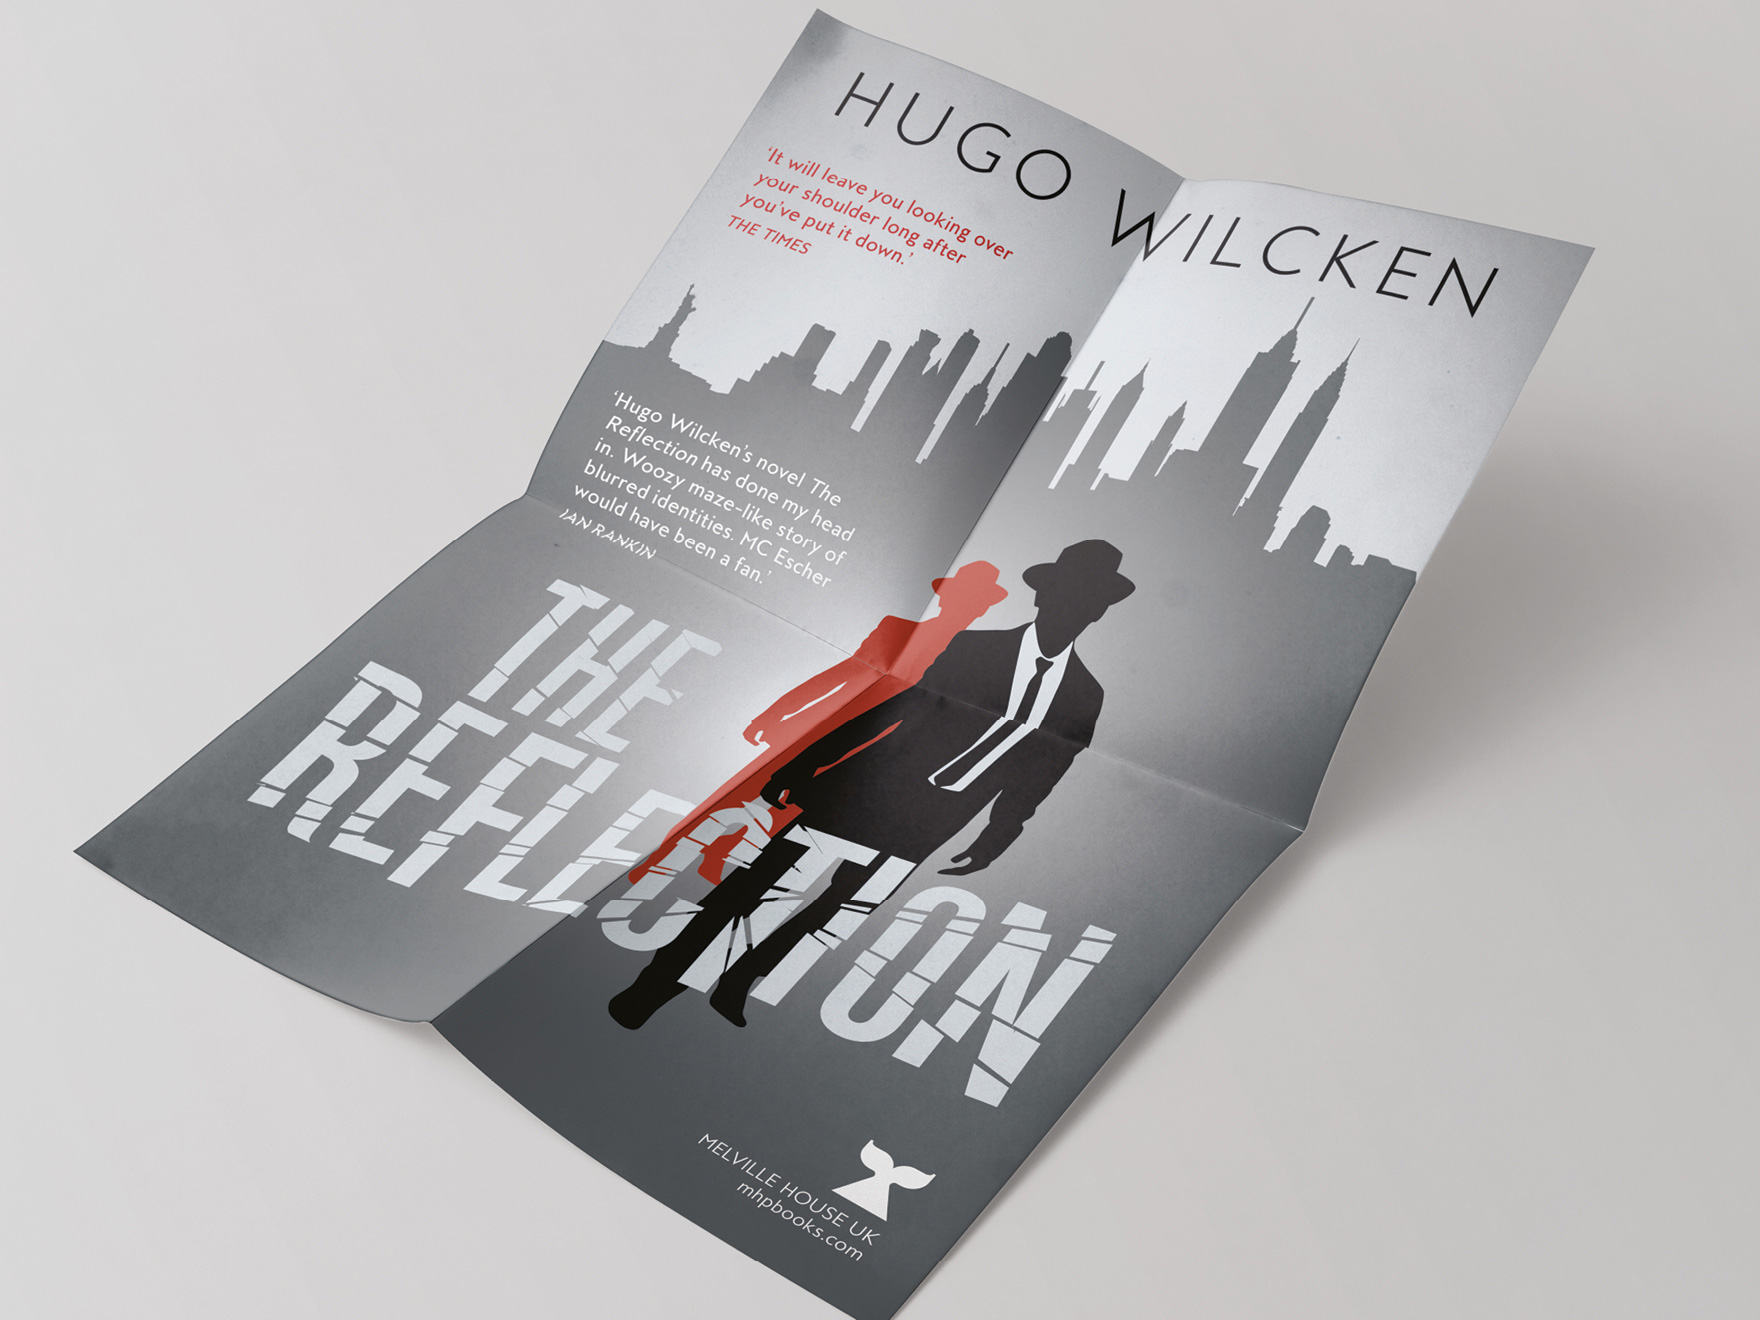 An A1 poster for the book The Reflection, using the cover artwork